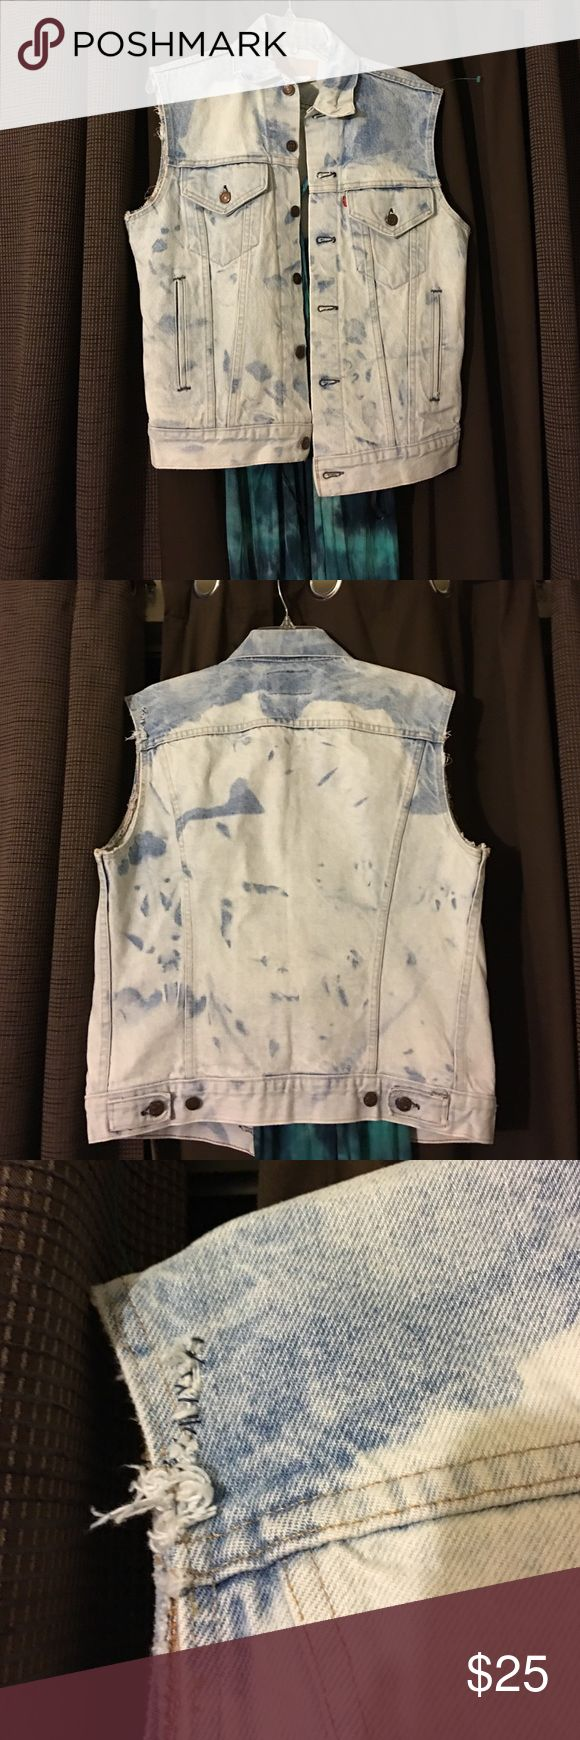 Levis vest vintage Levi's vest .... Tye dye denim great for the summer to wear over dresses ... Size on tag says 33 but I wear a large in shirts Jackets & Coats Jean Jackets